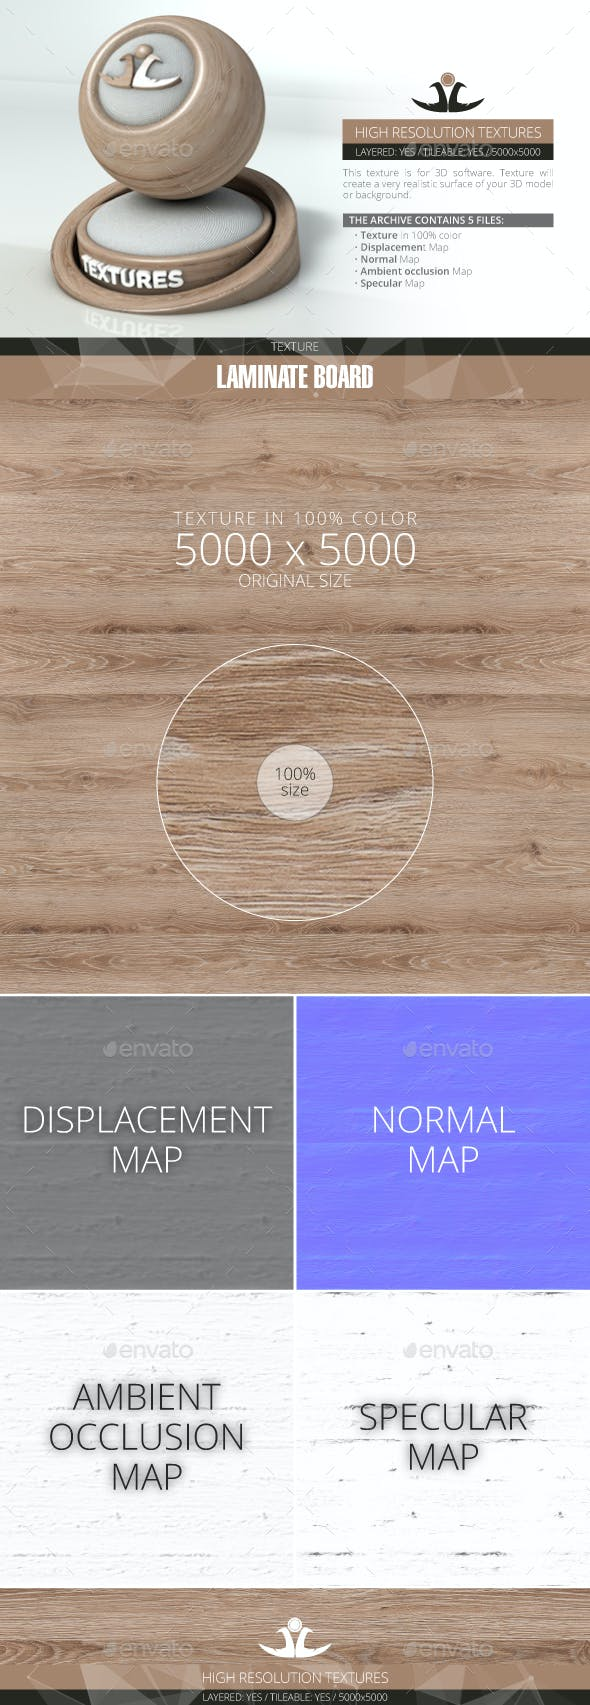 Laminate Board 9 - 3DOcean Item for Sale